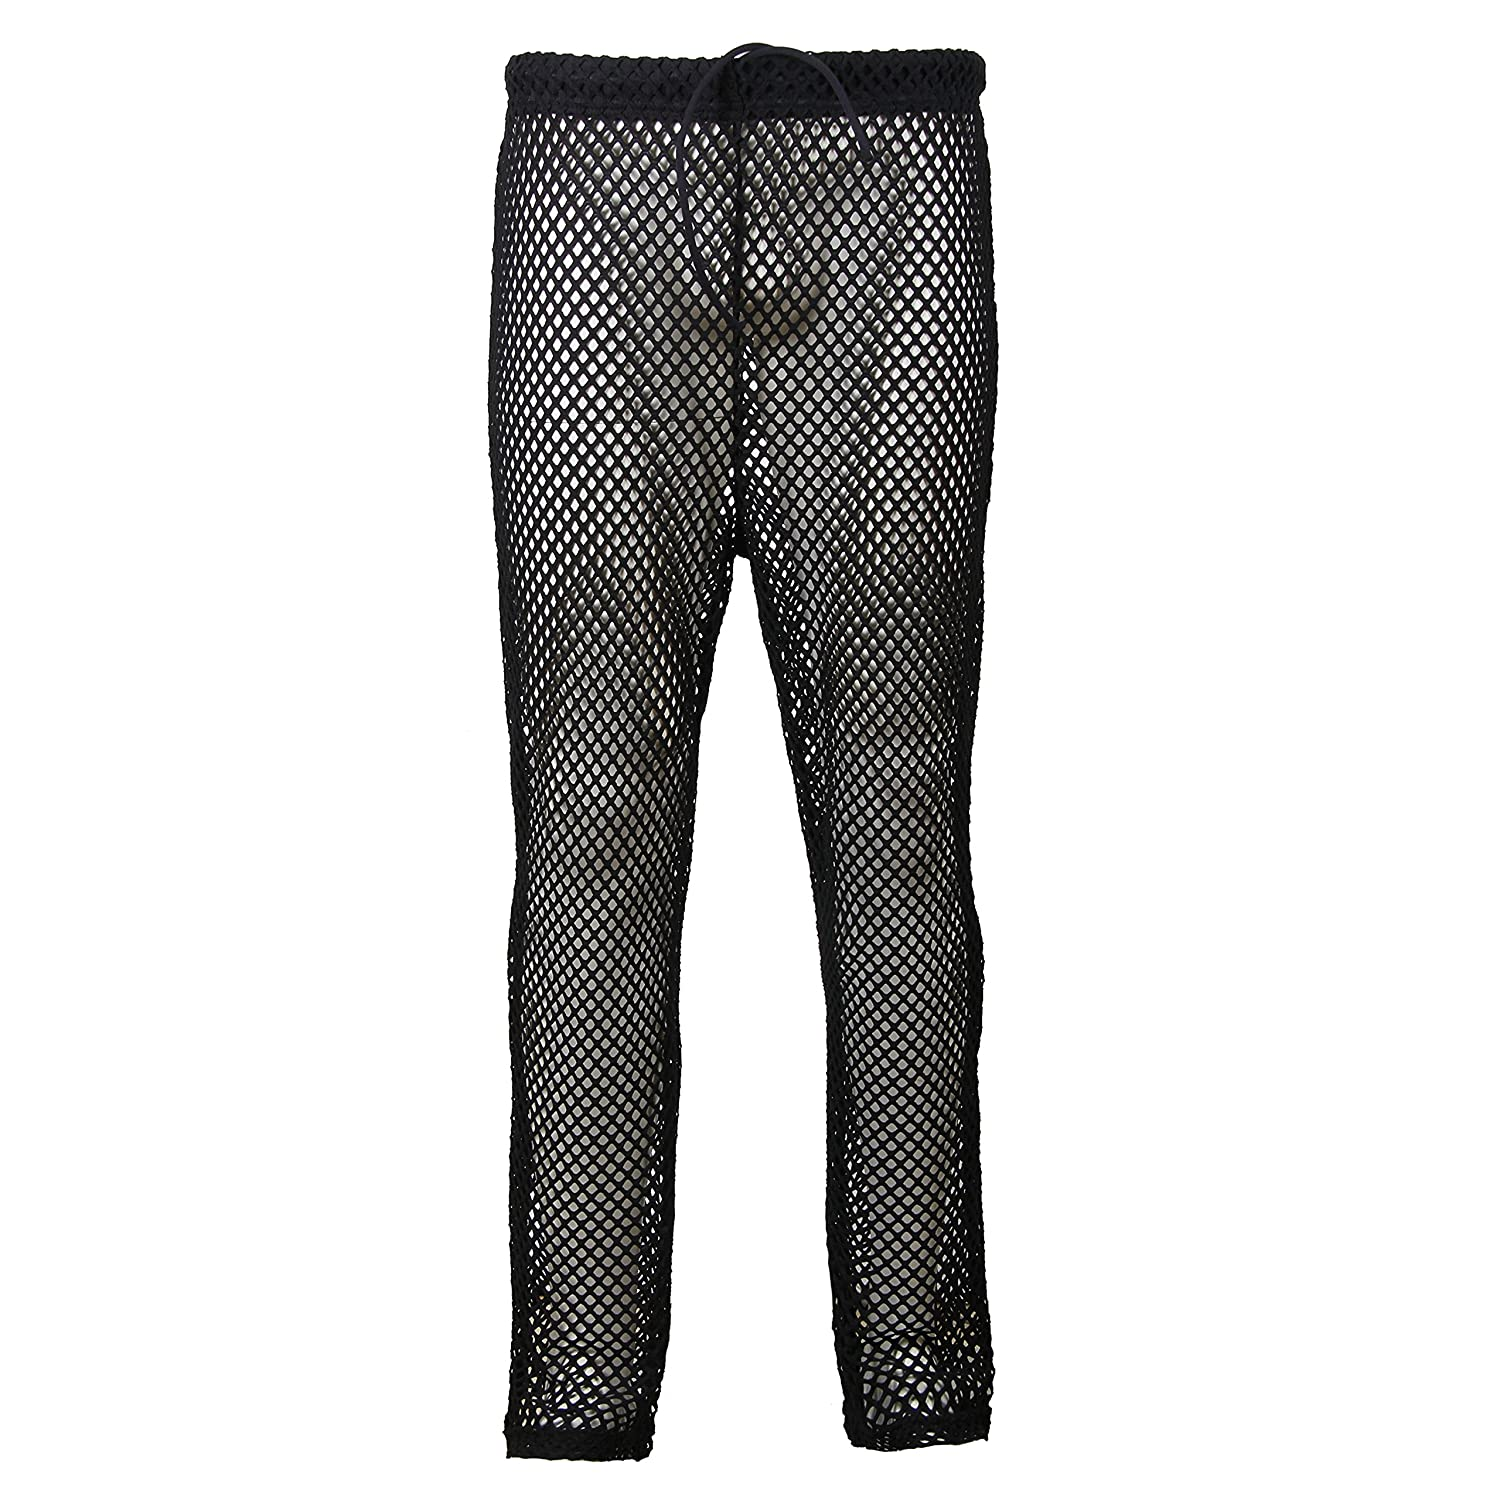 Godsen Mens Mesh See Through Mesh Lounge Pants Nightwear2P (XL,GTM1065-Black) GTM1005